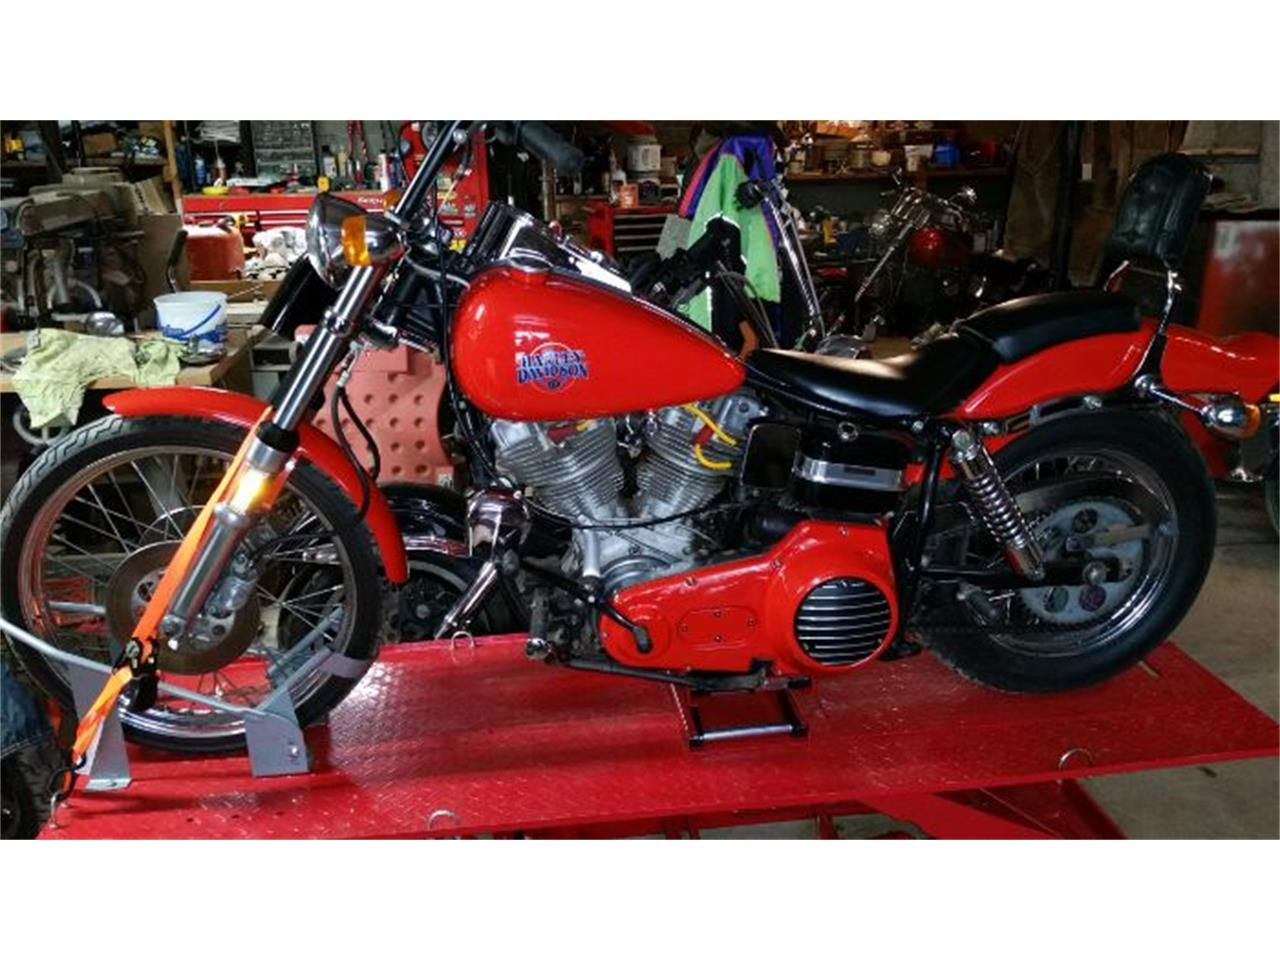 Large Picture of 1980 Harley-Davidson Wide Glide located in Michigan - $9,995.00 Offered by Classic Car Deals - NYW2